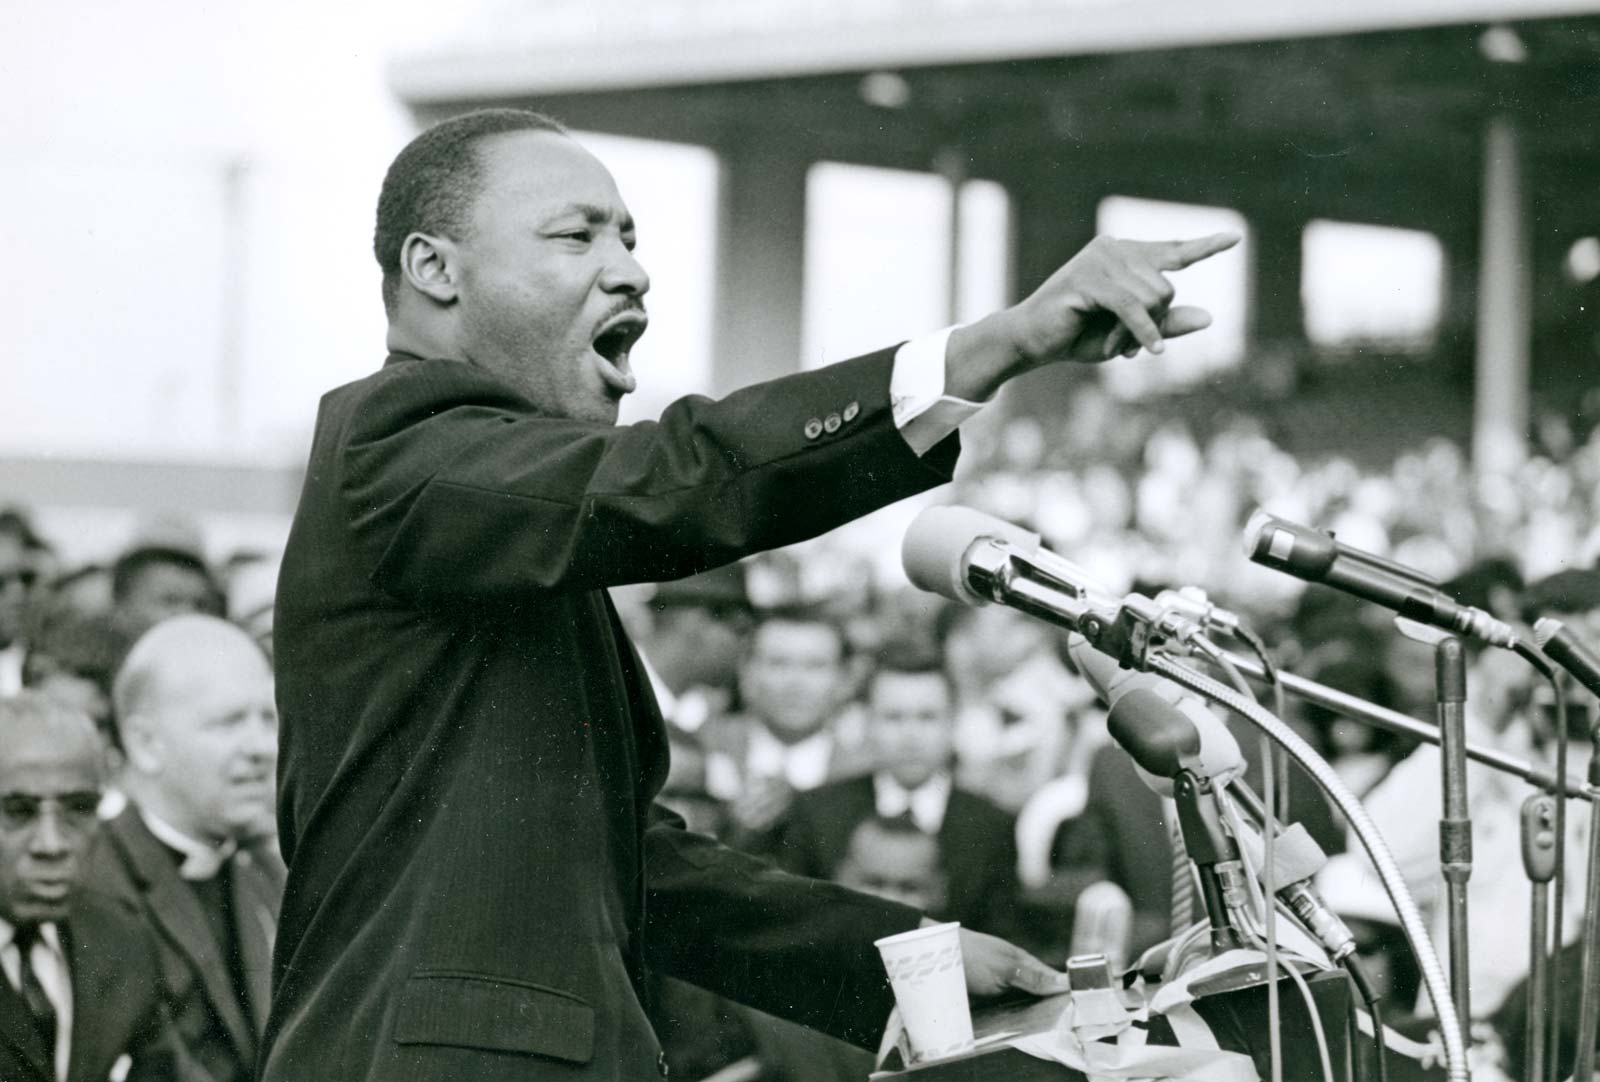 October 14, 1964 – Martin Luther King Jr. wins Nobel Peace Prize for combating racial inequality through non-violent resistance